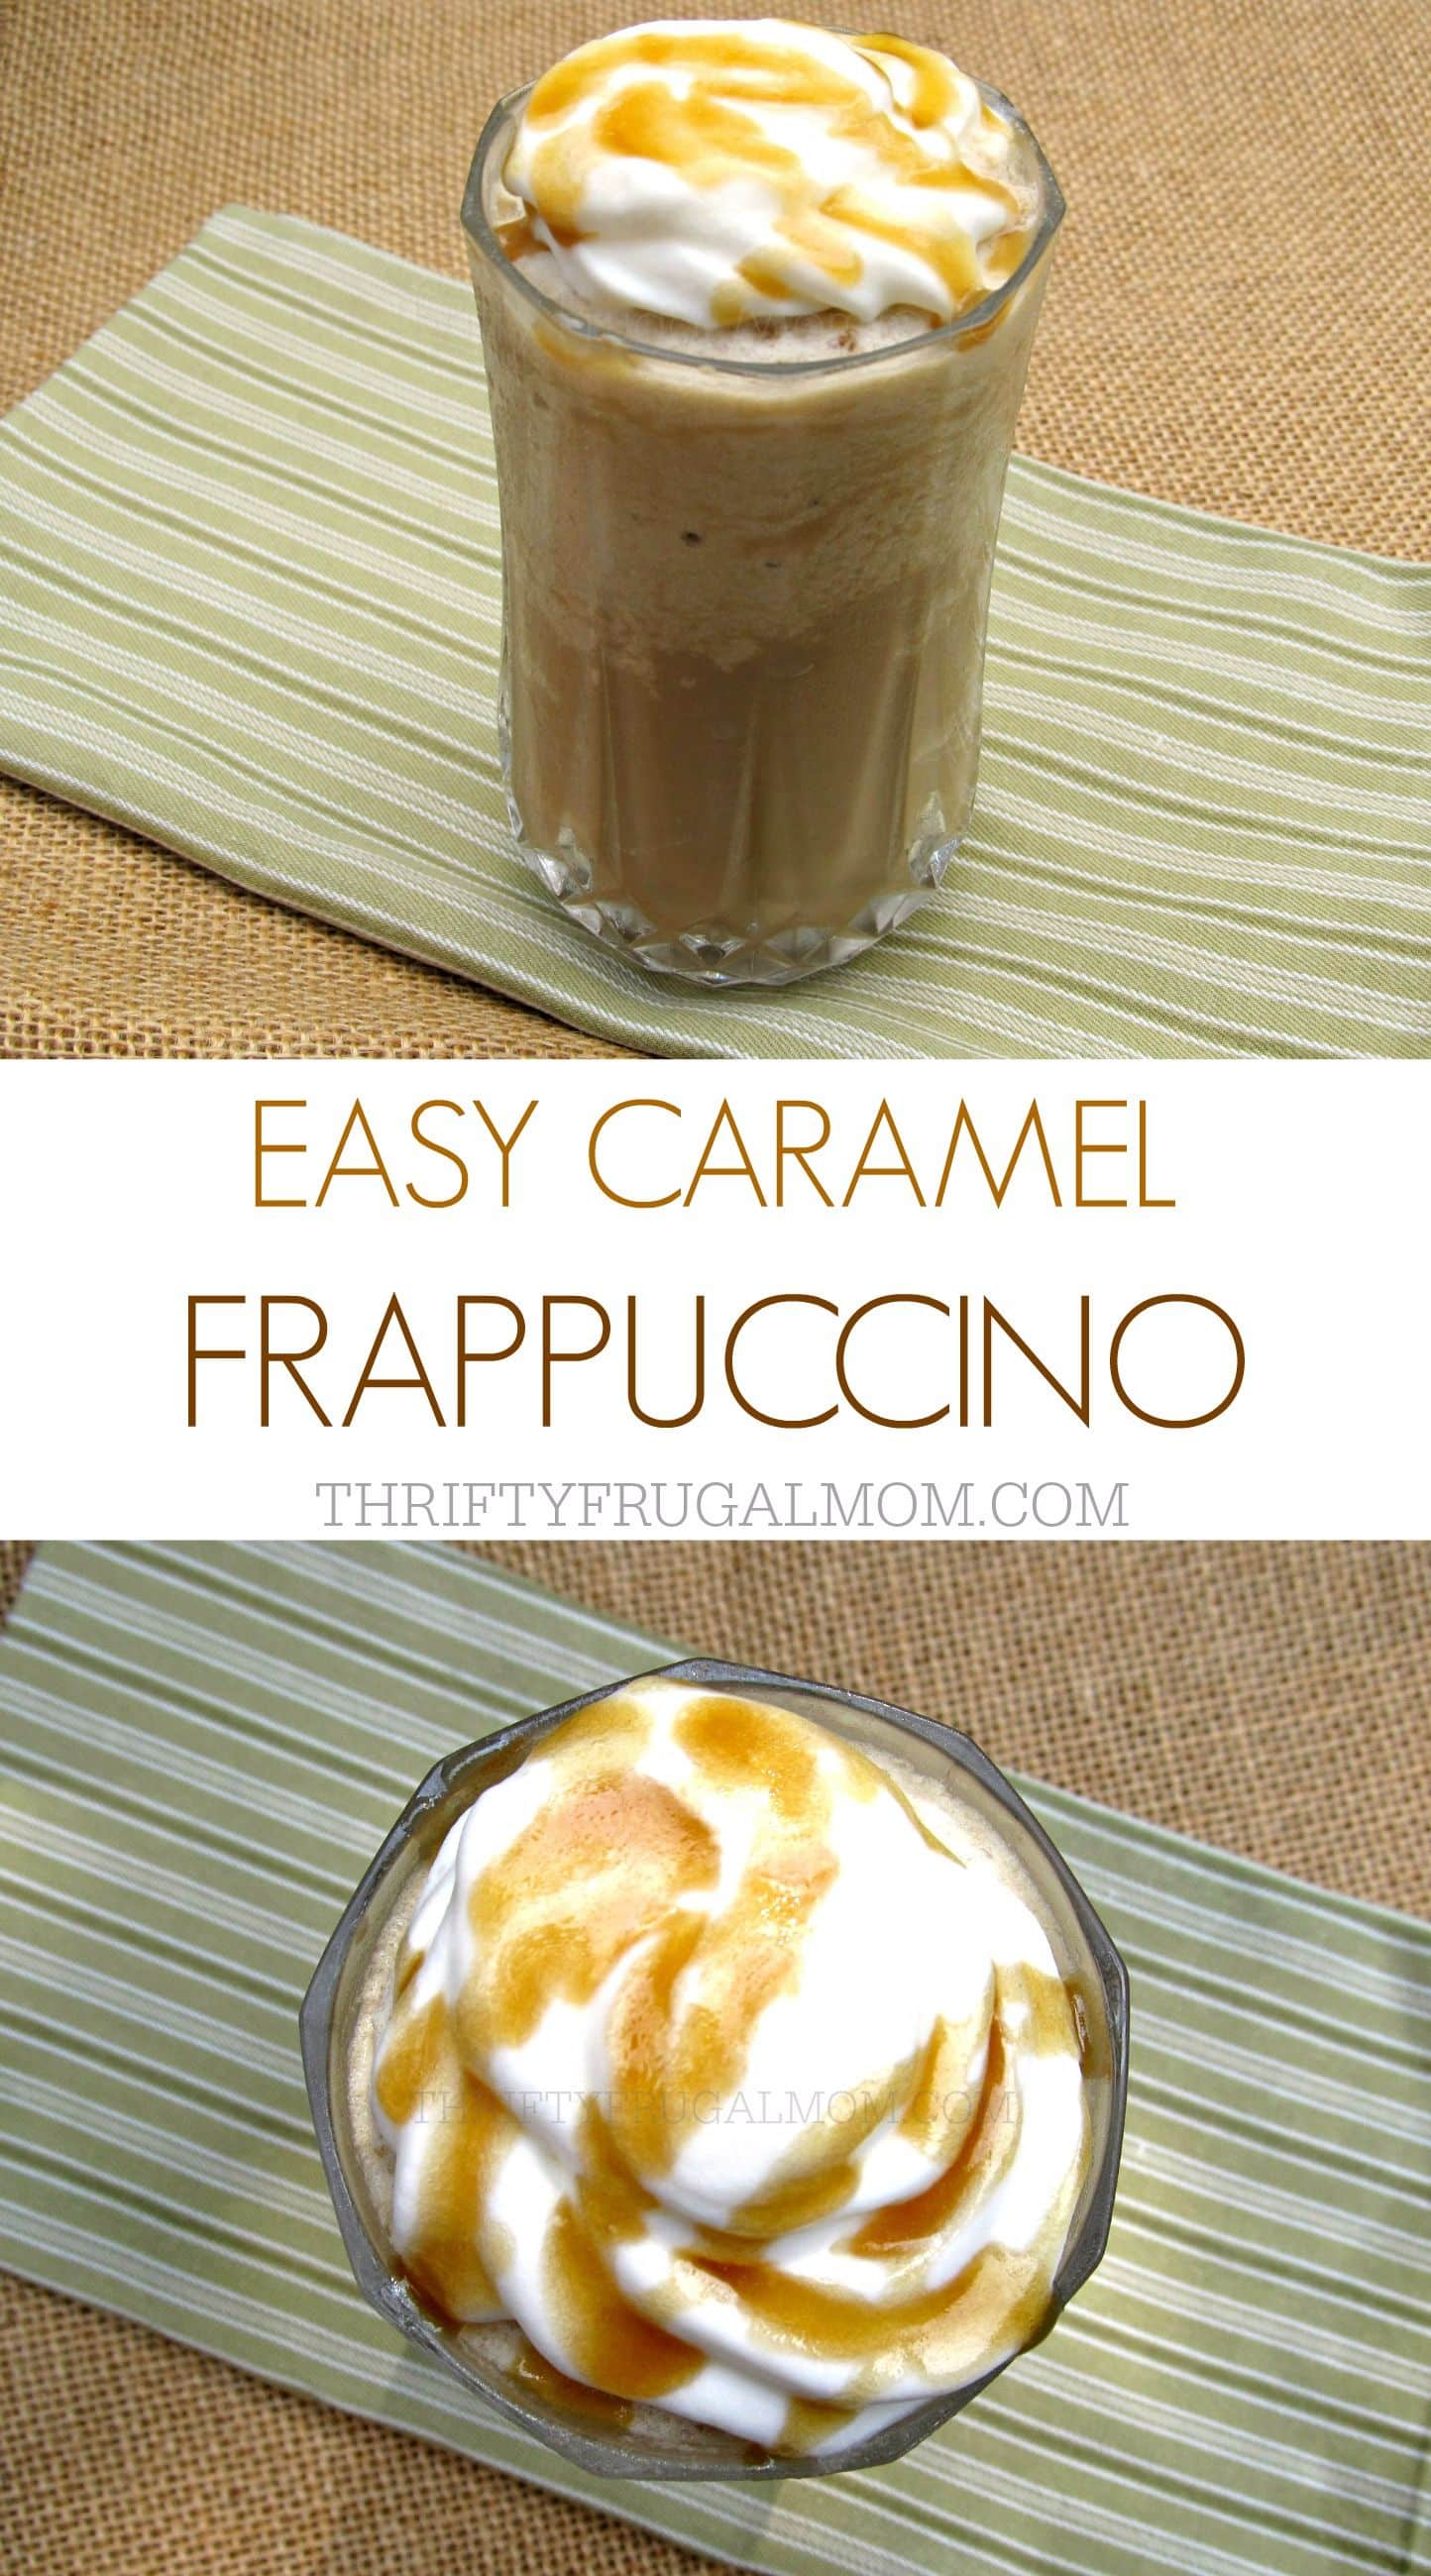 Make a homemade caramel frappe with this delicious, easy recipe. Not only will it save you money, it's also a great way to use up leftover coffee!